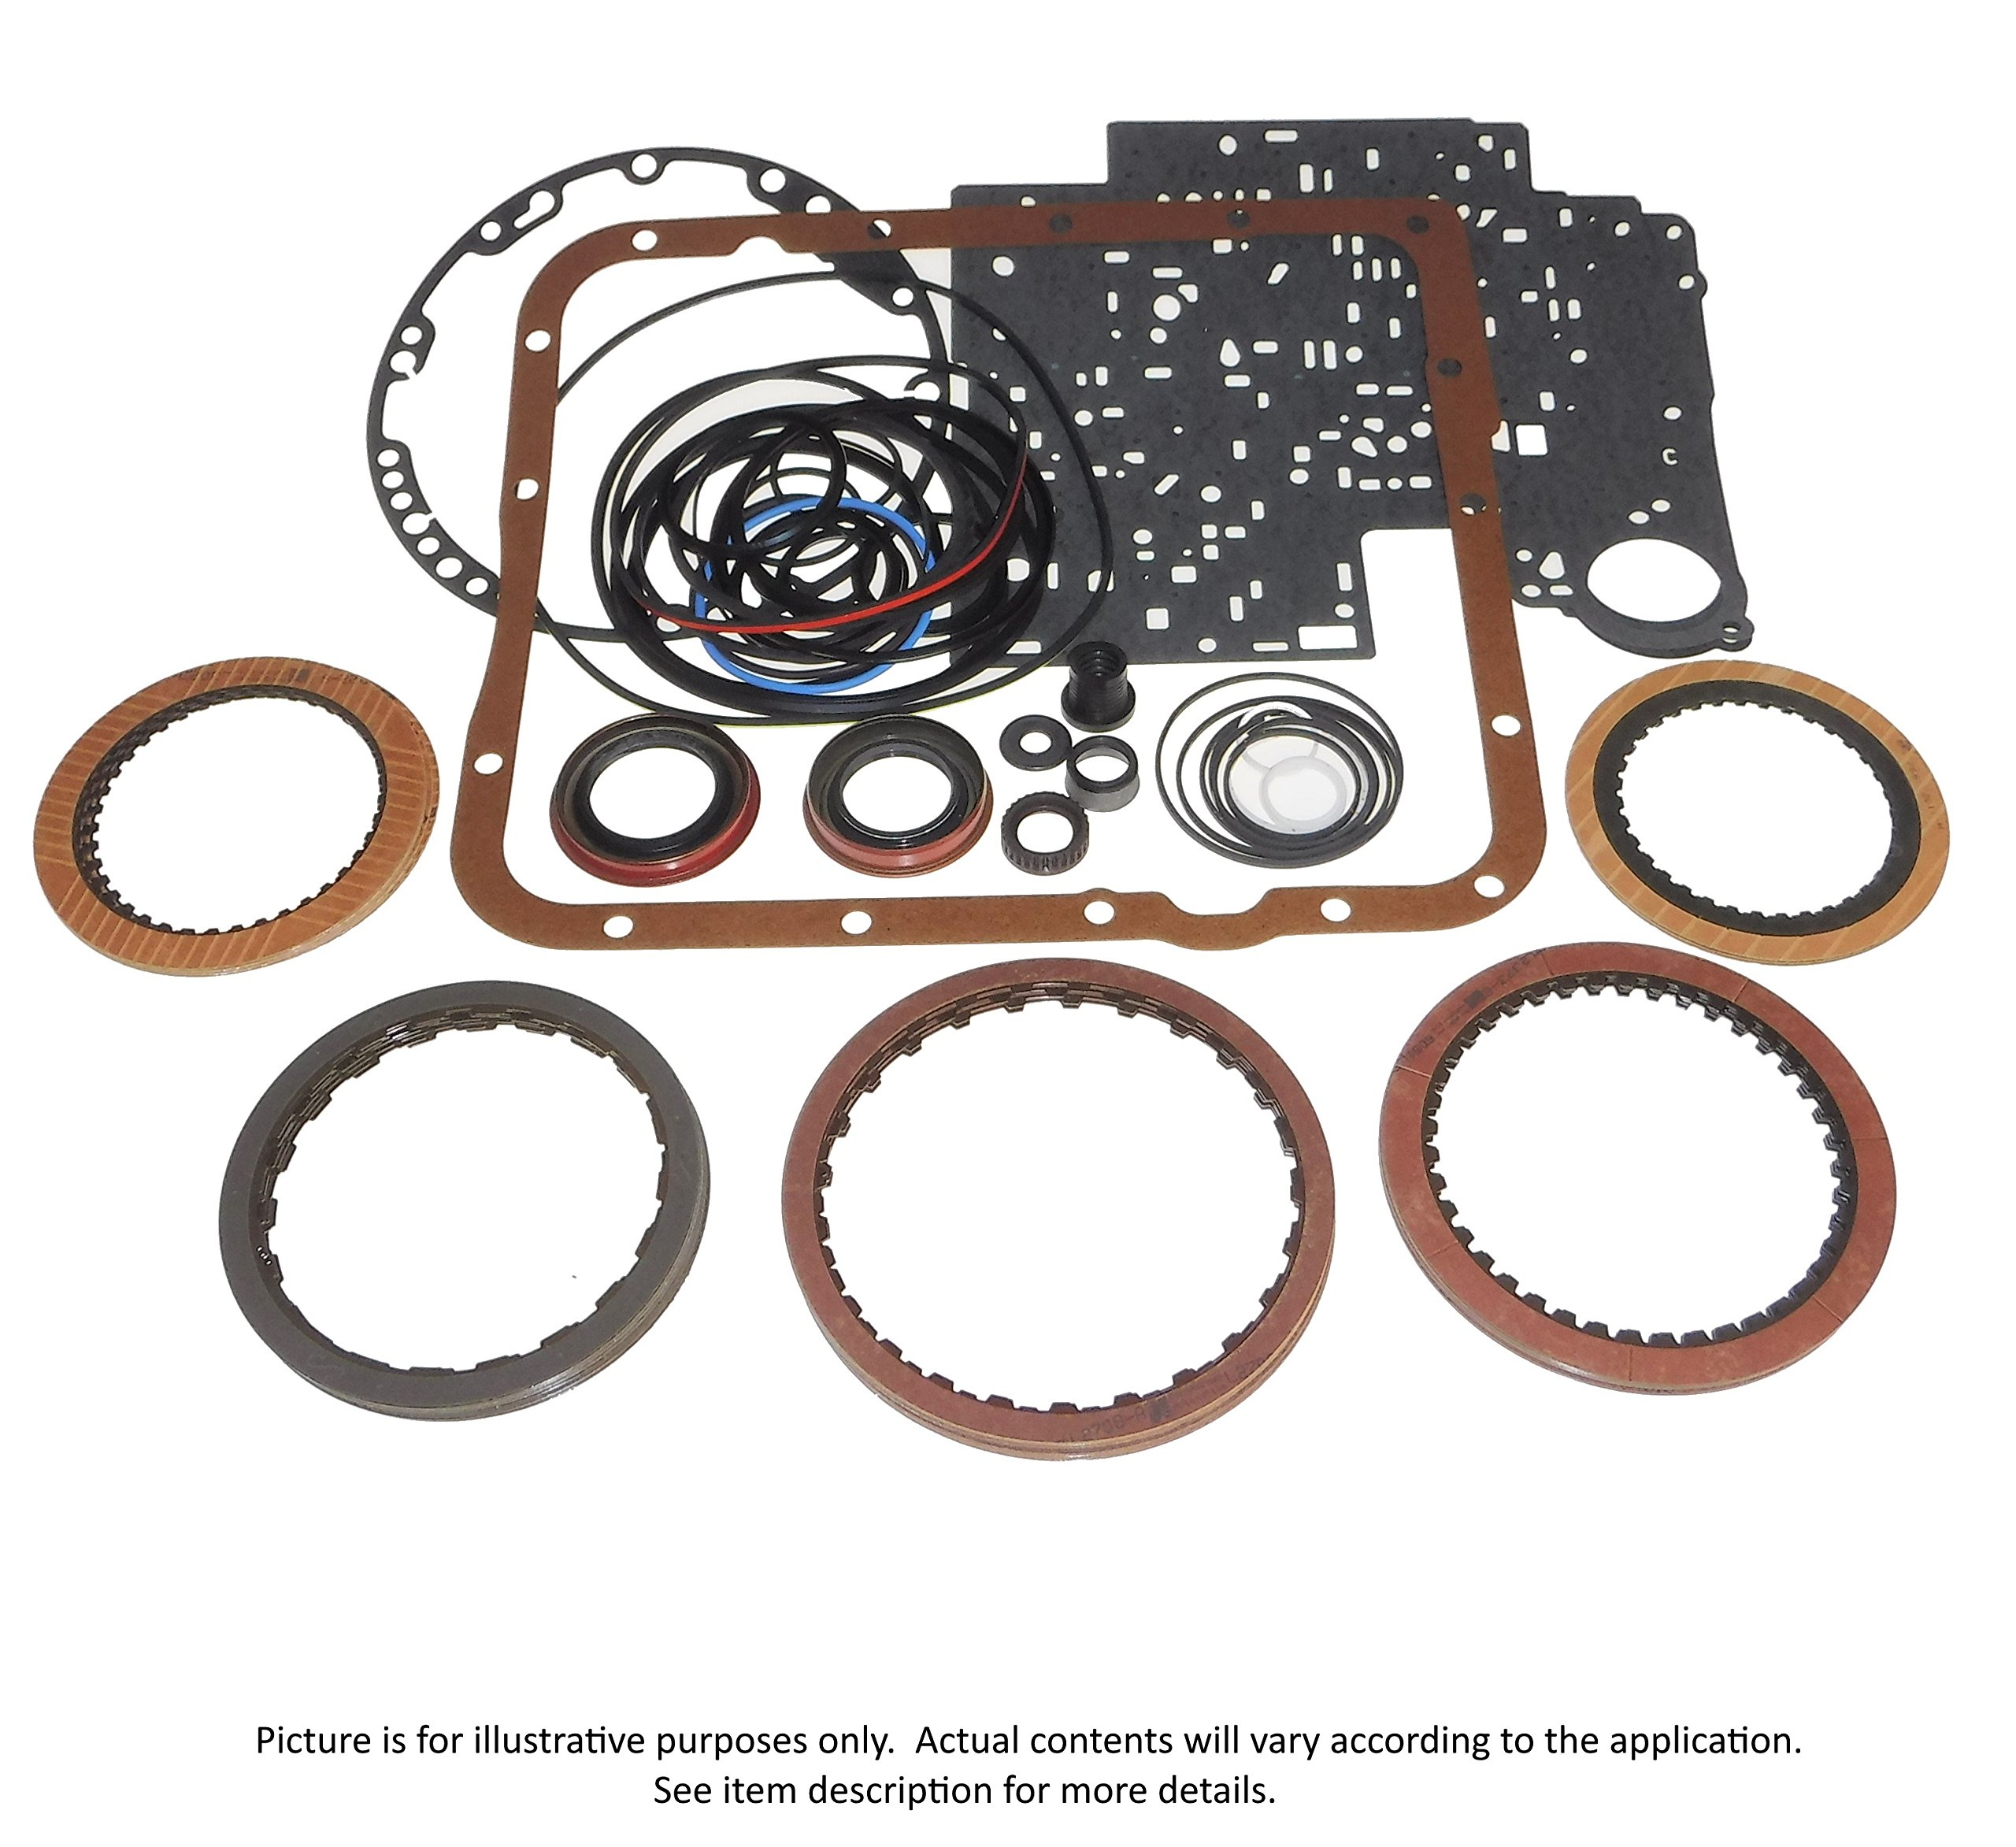 Transmaxx Transmission Rebuild Banner Kit Less Steels U341E U340E